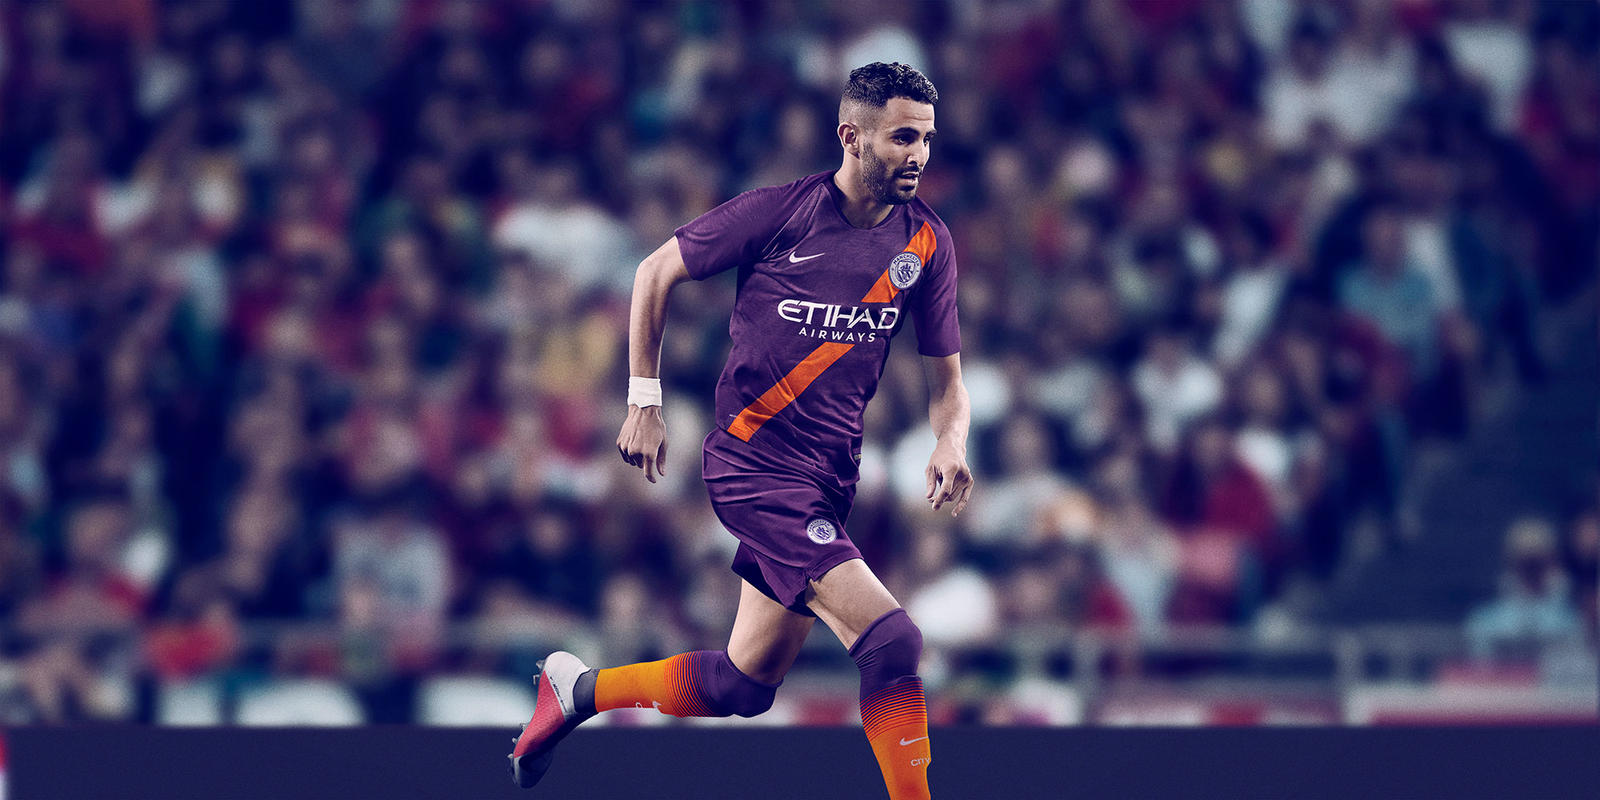 Manchester City Fc S 2018 19 Third Kit Reintroduces The Sash Nike News